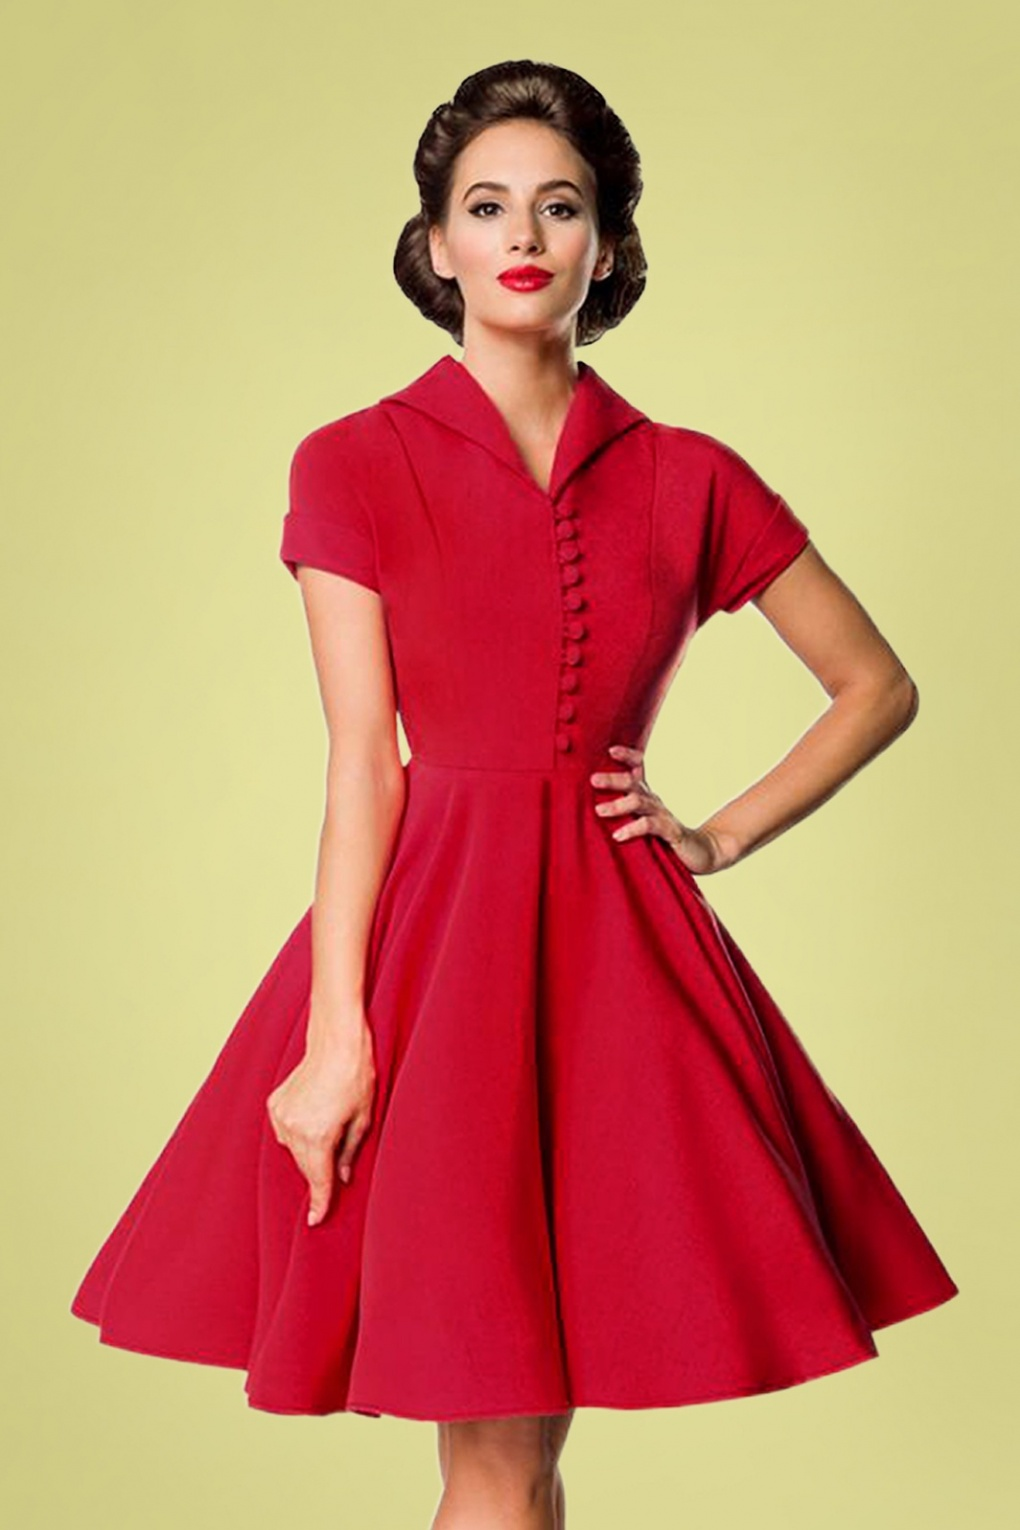 Swing Dance Clothing You Can Dance In 40s Valencia Swing Dress in Deep Red £72.60 AT vintagedancer.com